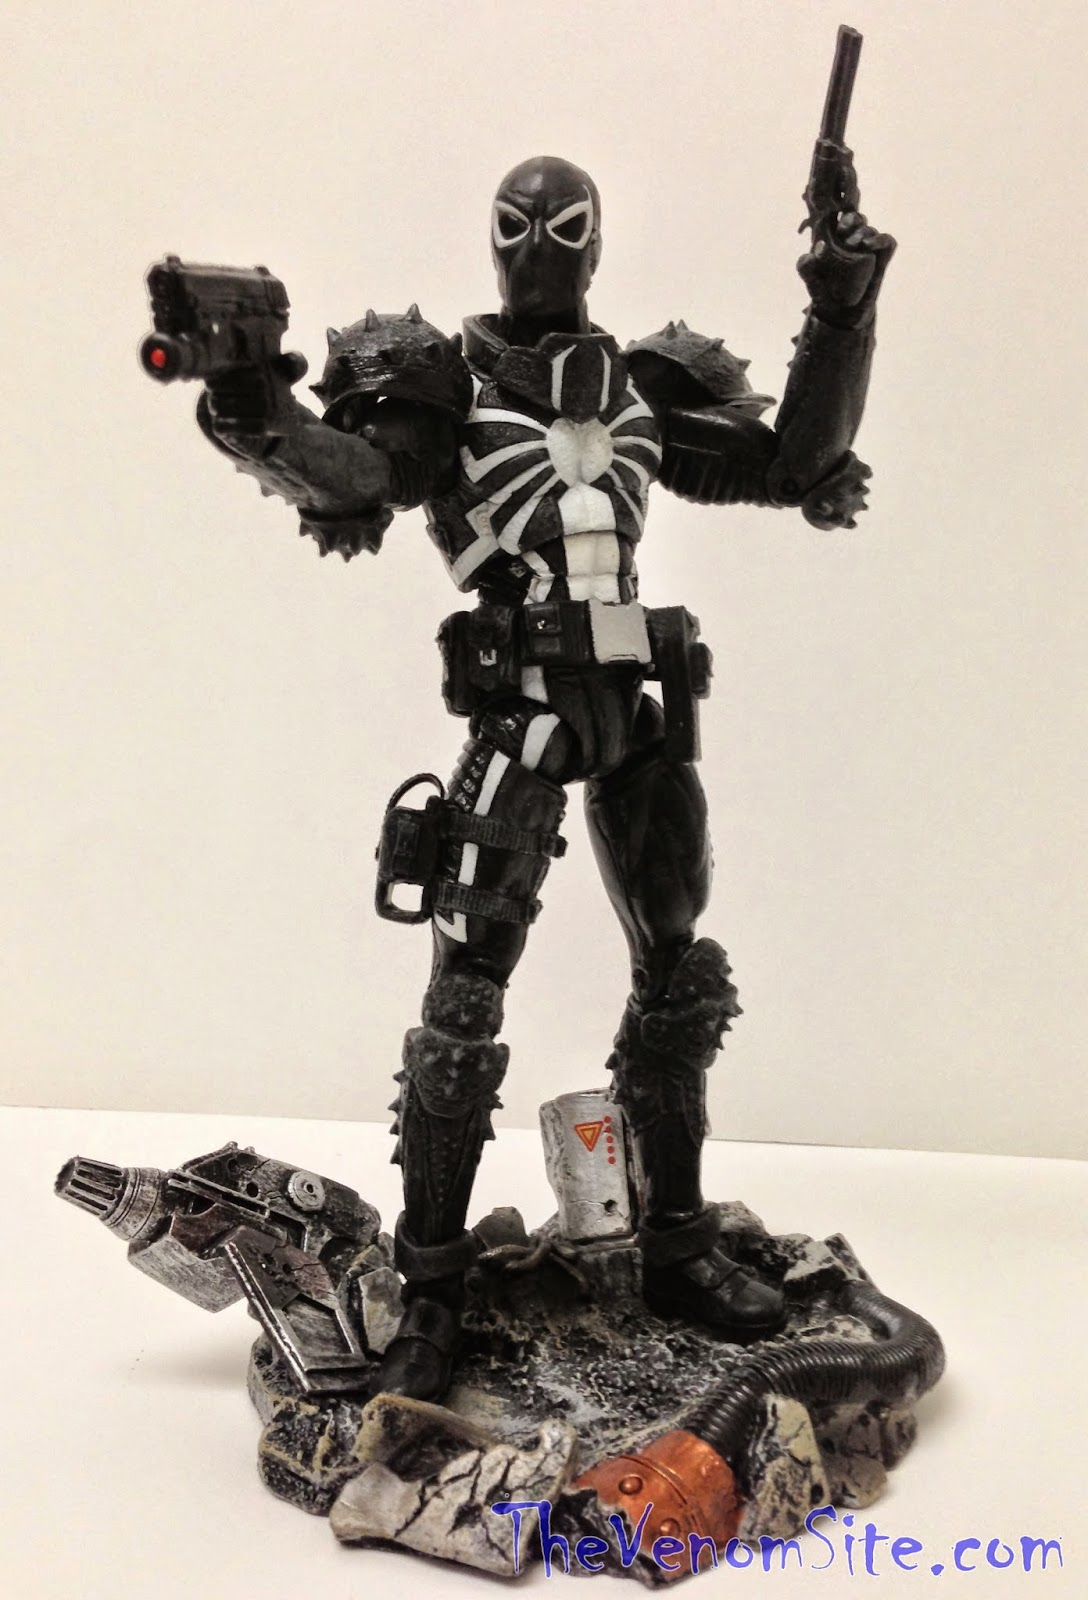 Buy Marvel Select Agent Venom exclusively from Disney Stores